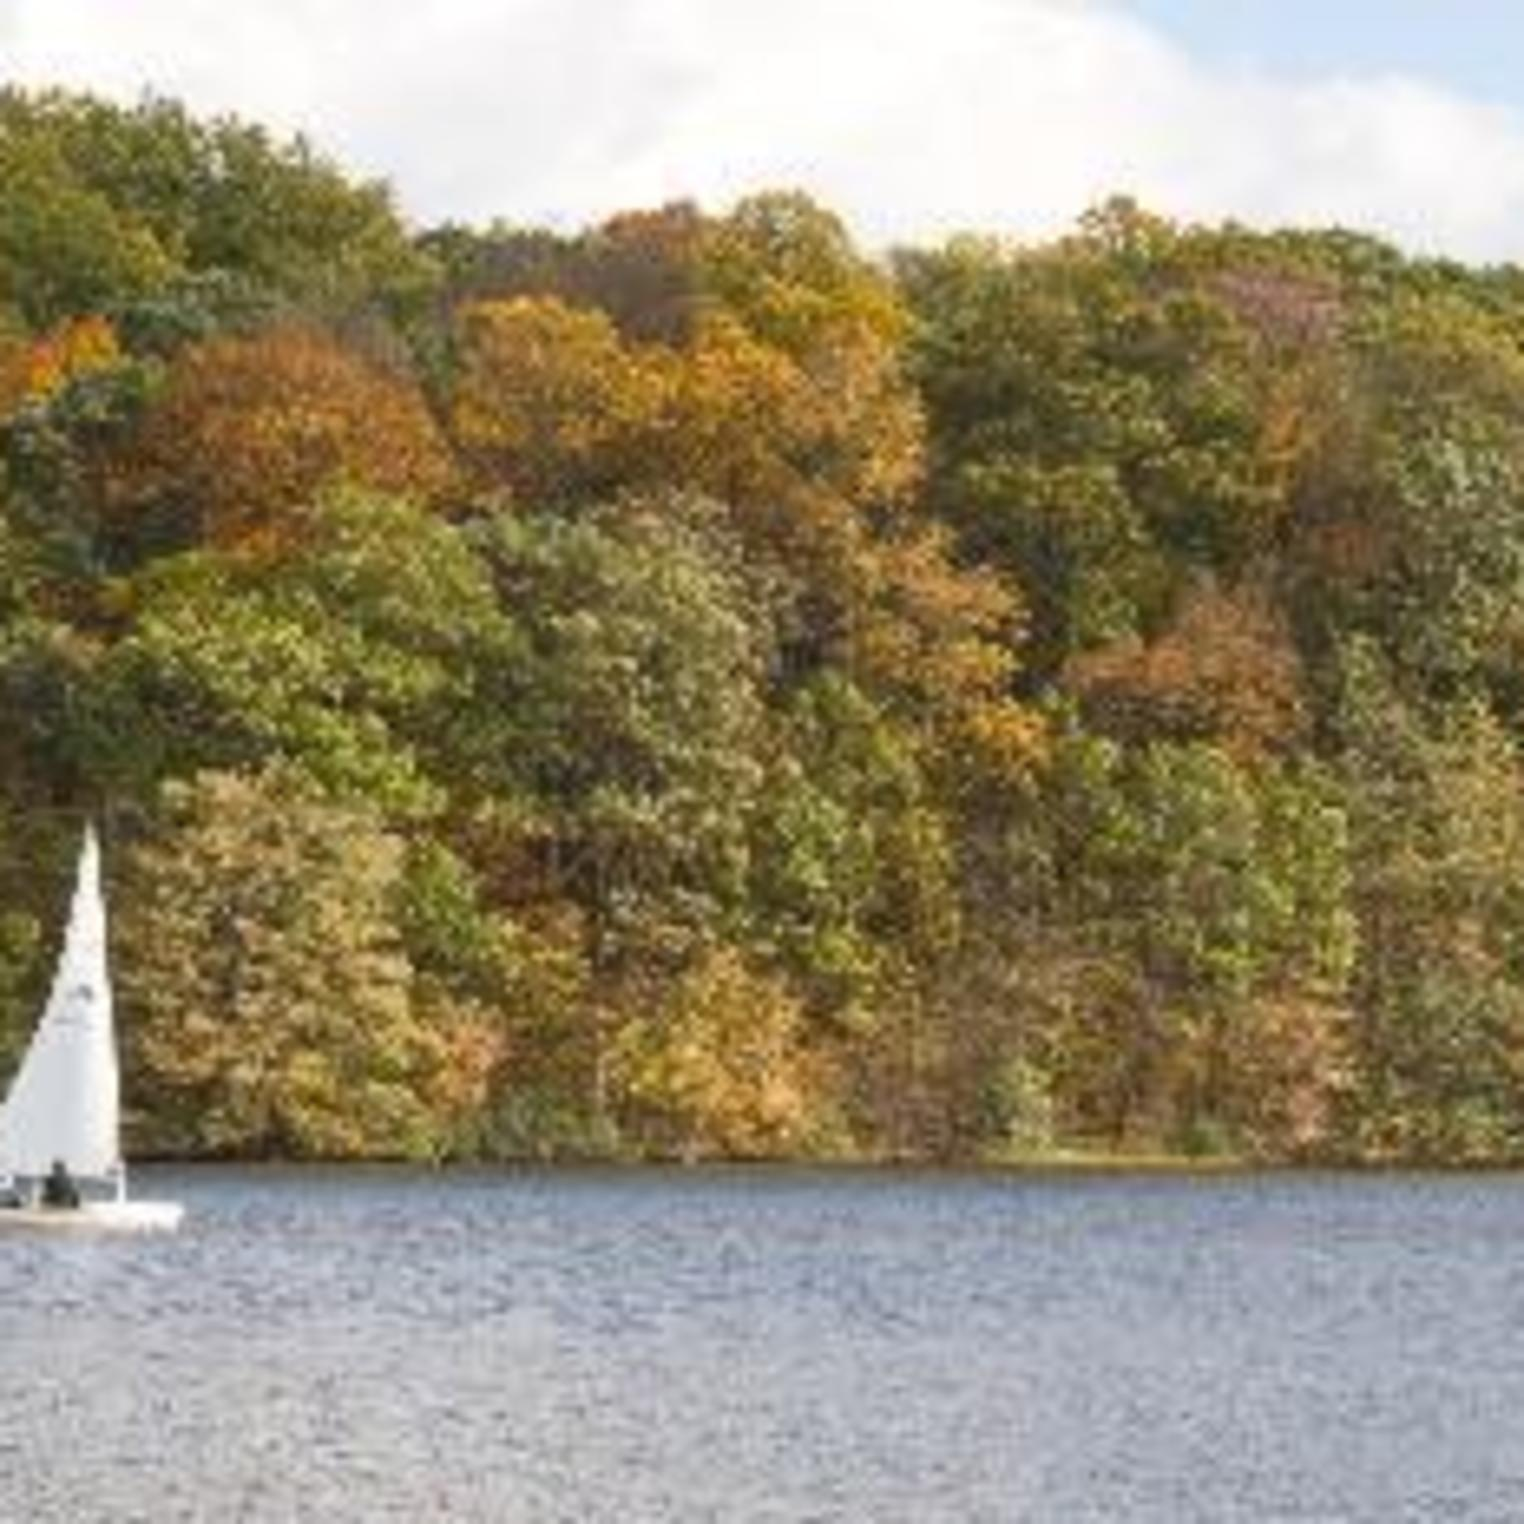 Pinchot State Park